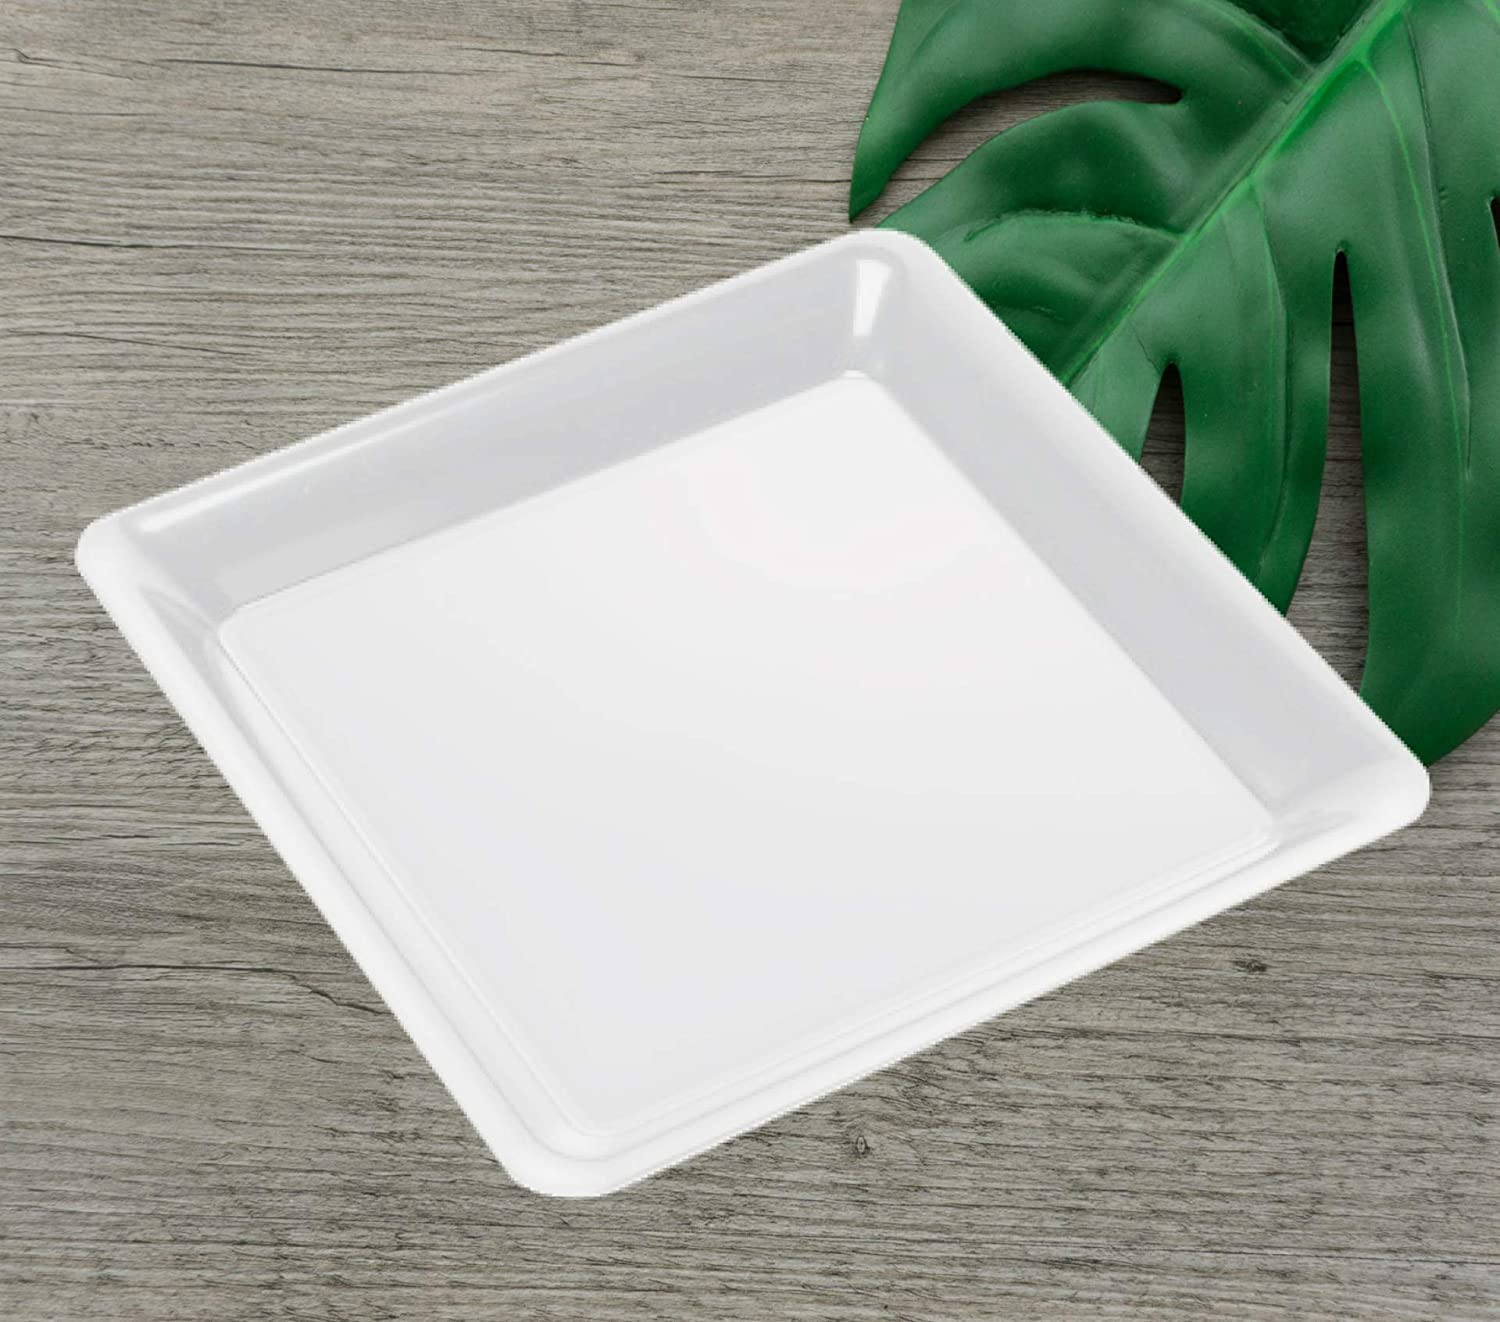 Amazon Com 4 12 White Square Plastic Trays Heavy Duty Plastic Serving Tray 12 X 12 Unbreakable Serving Platters Food Tray Decorative Serving Trays Wedding Platter Party Trays Disposable Serving Party Platters